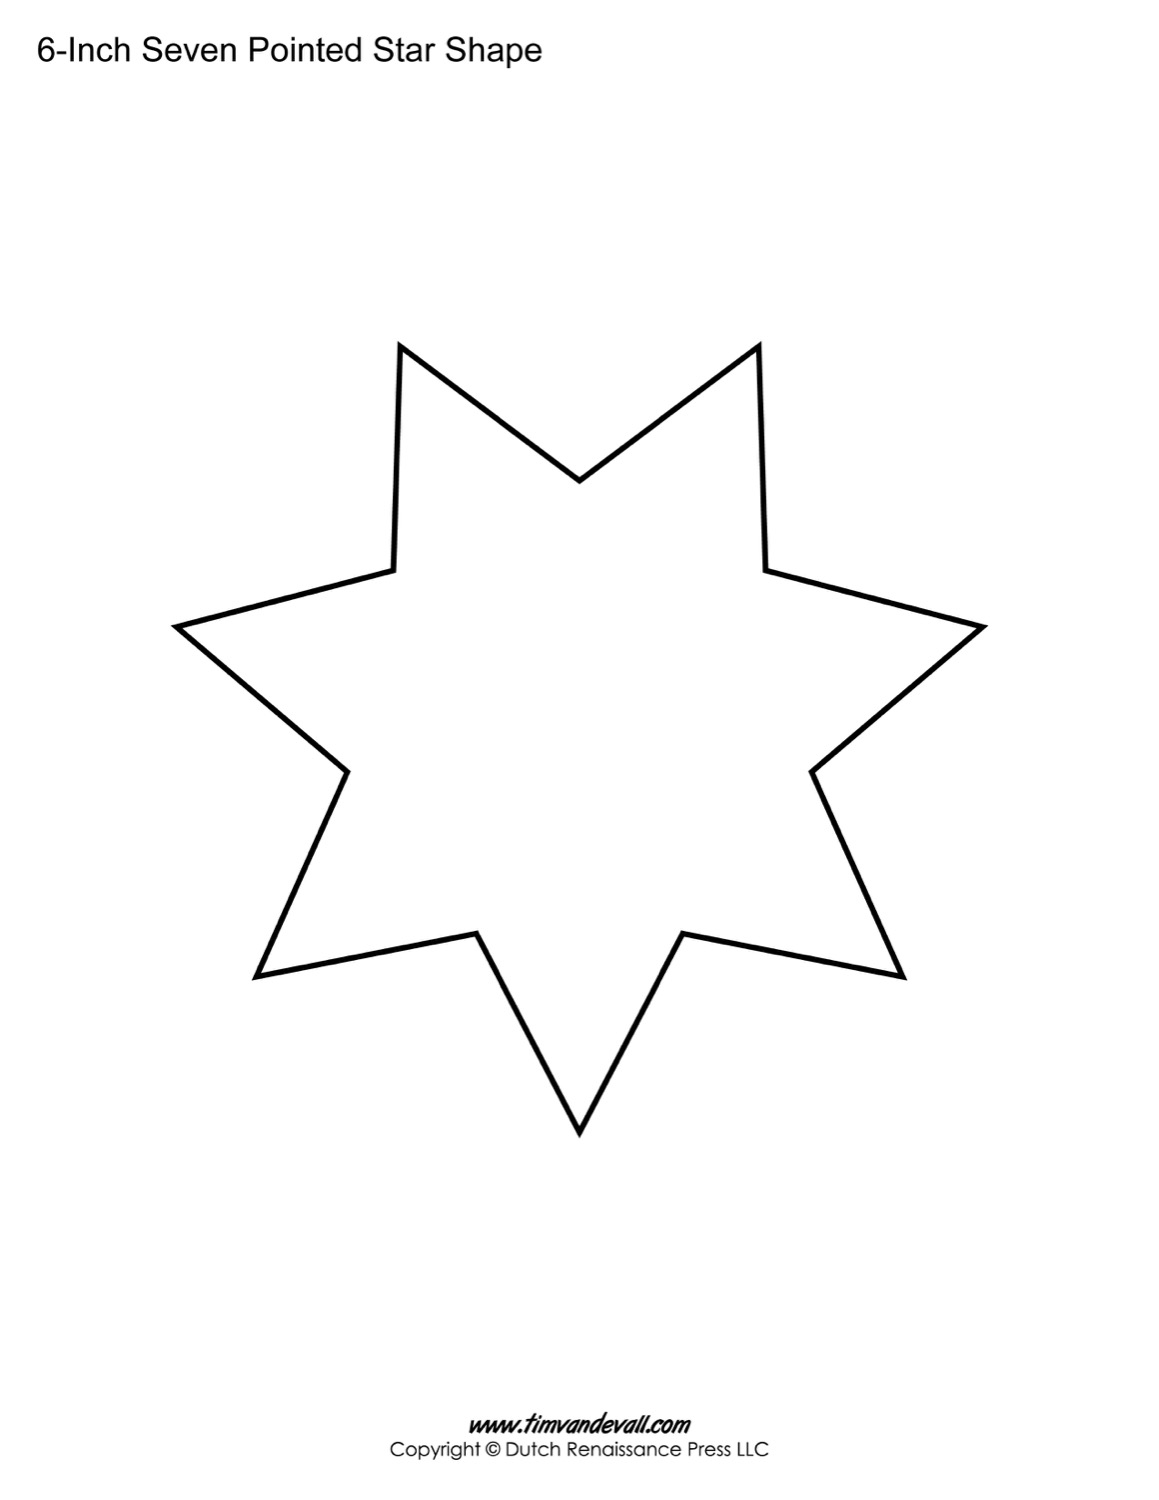 Drawn star sided For Shapes Templates printable Pointed